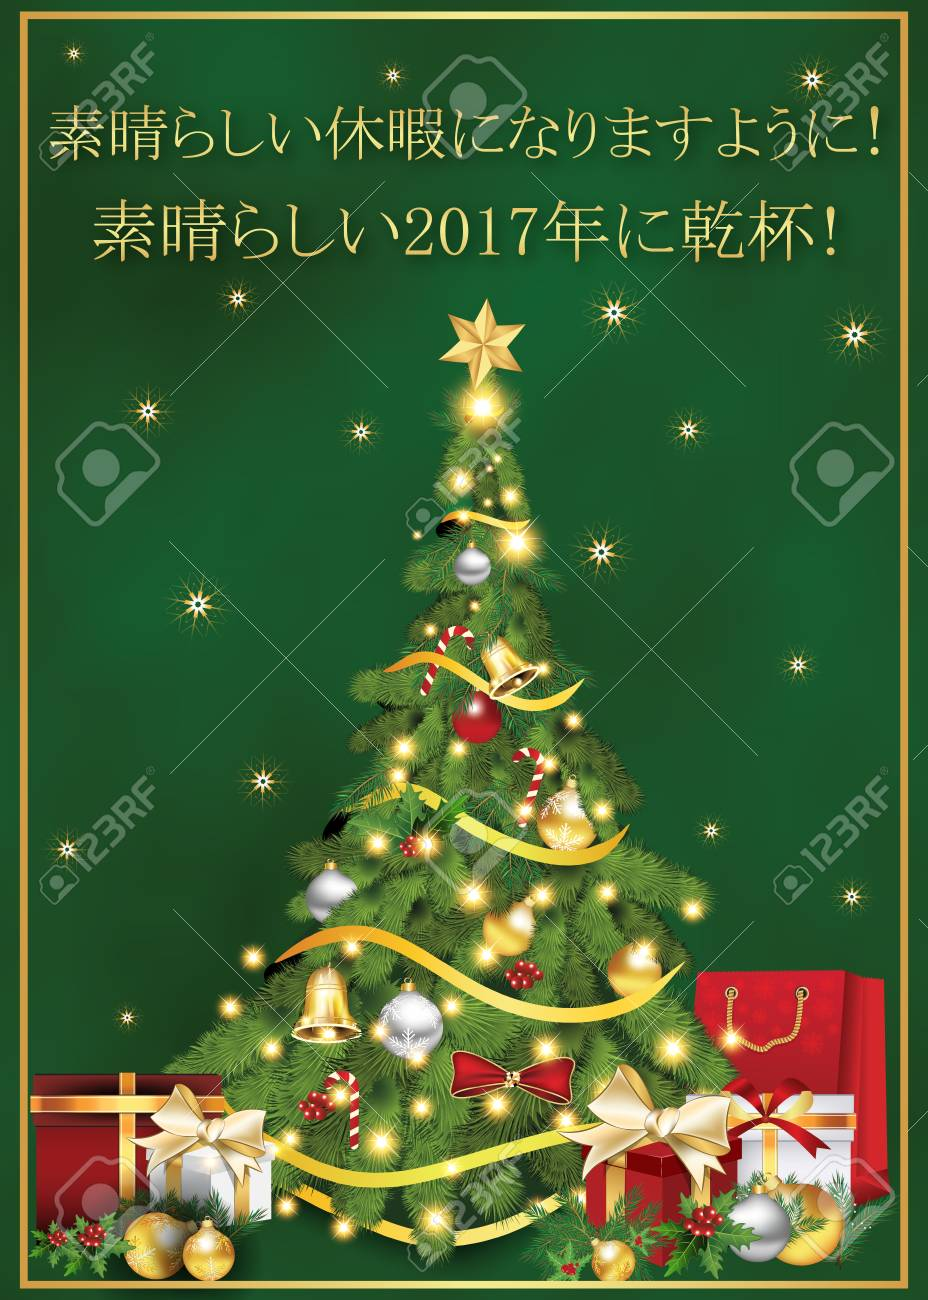 Christmas greetings in japanese gallery greetings card design simple japanese greeting card we wish you merry christmas and happy m4hsunfo